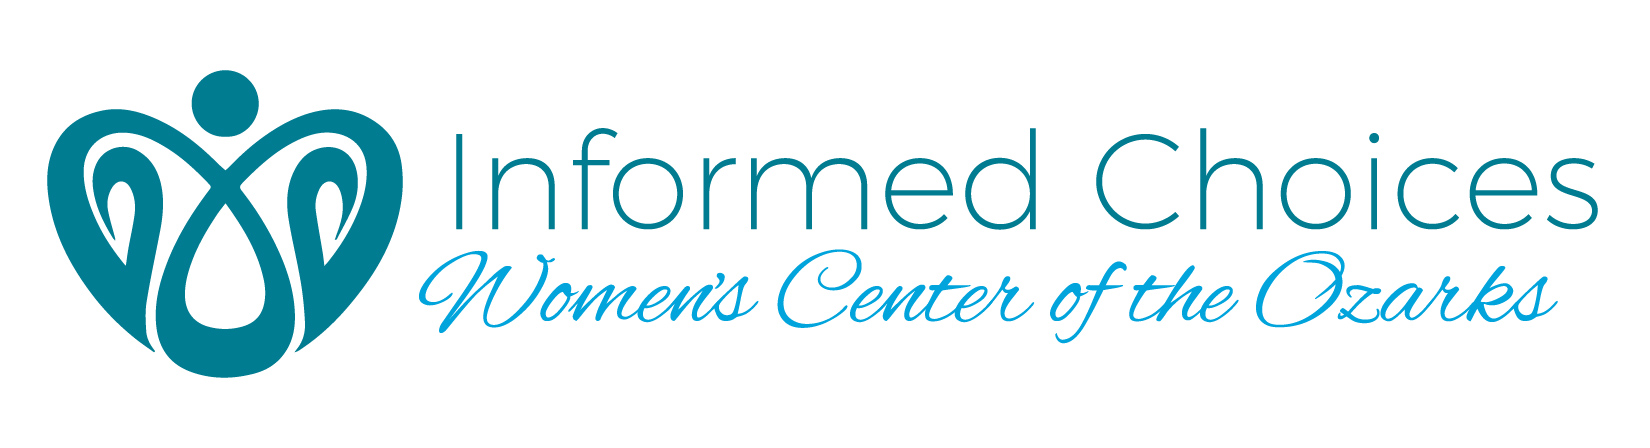 Informed Choices Women's Center of the Ozarks